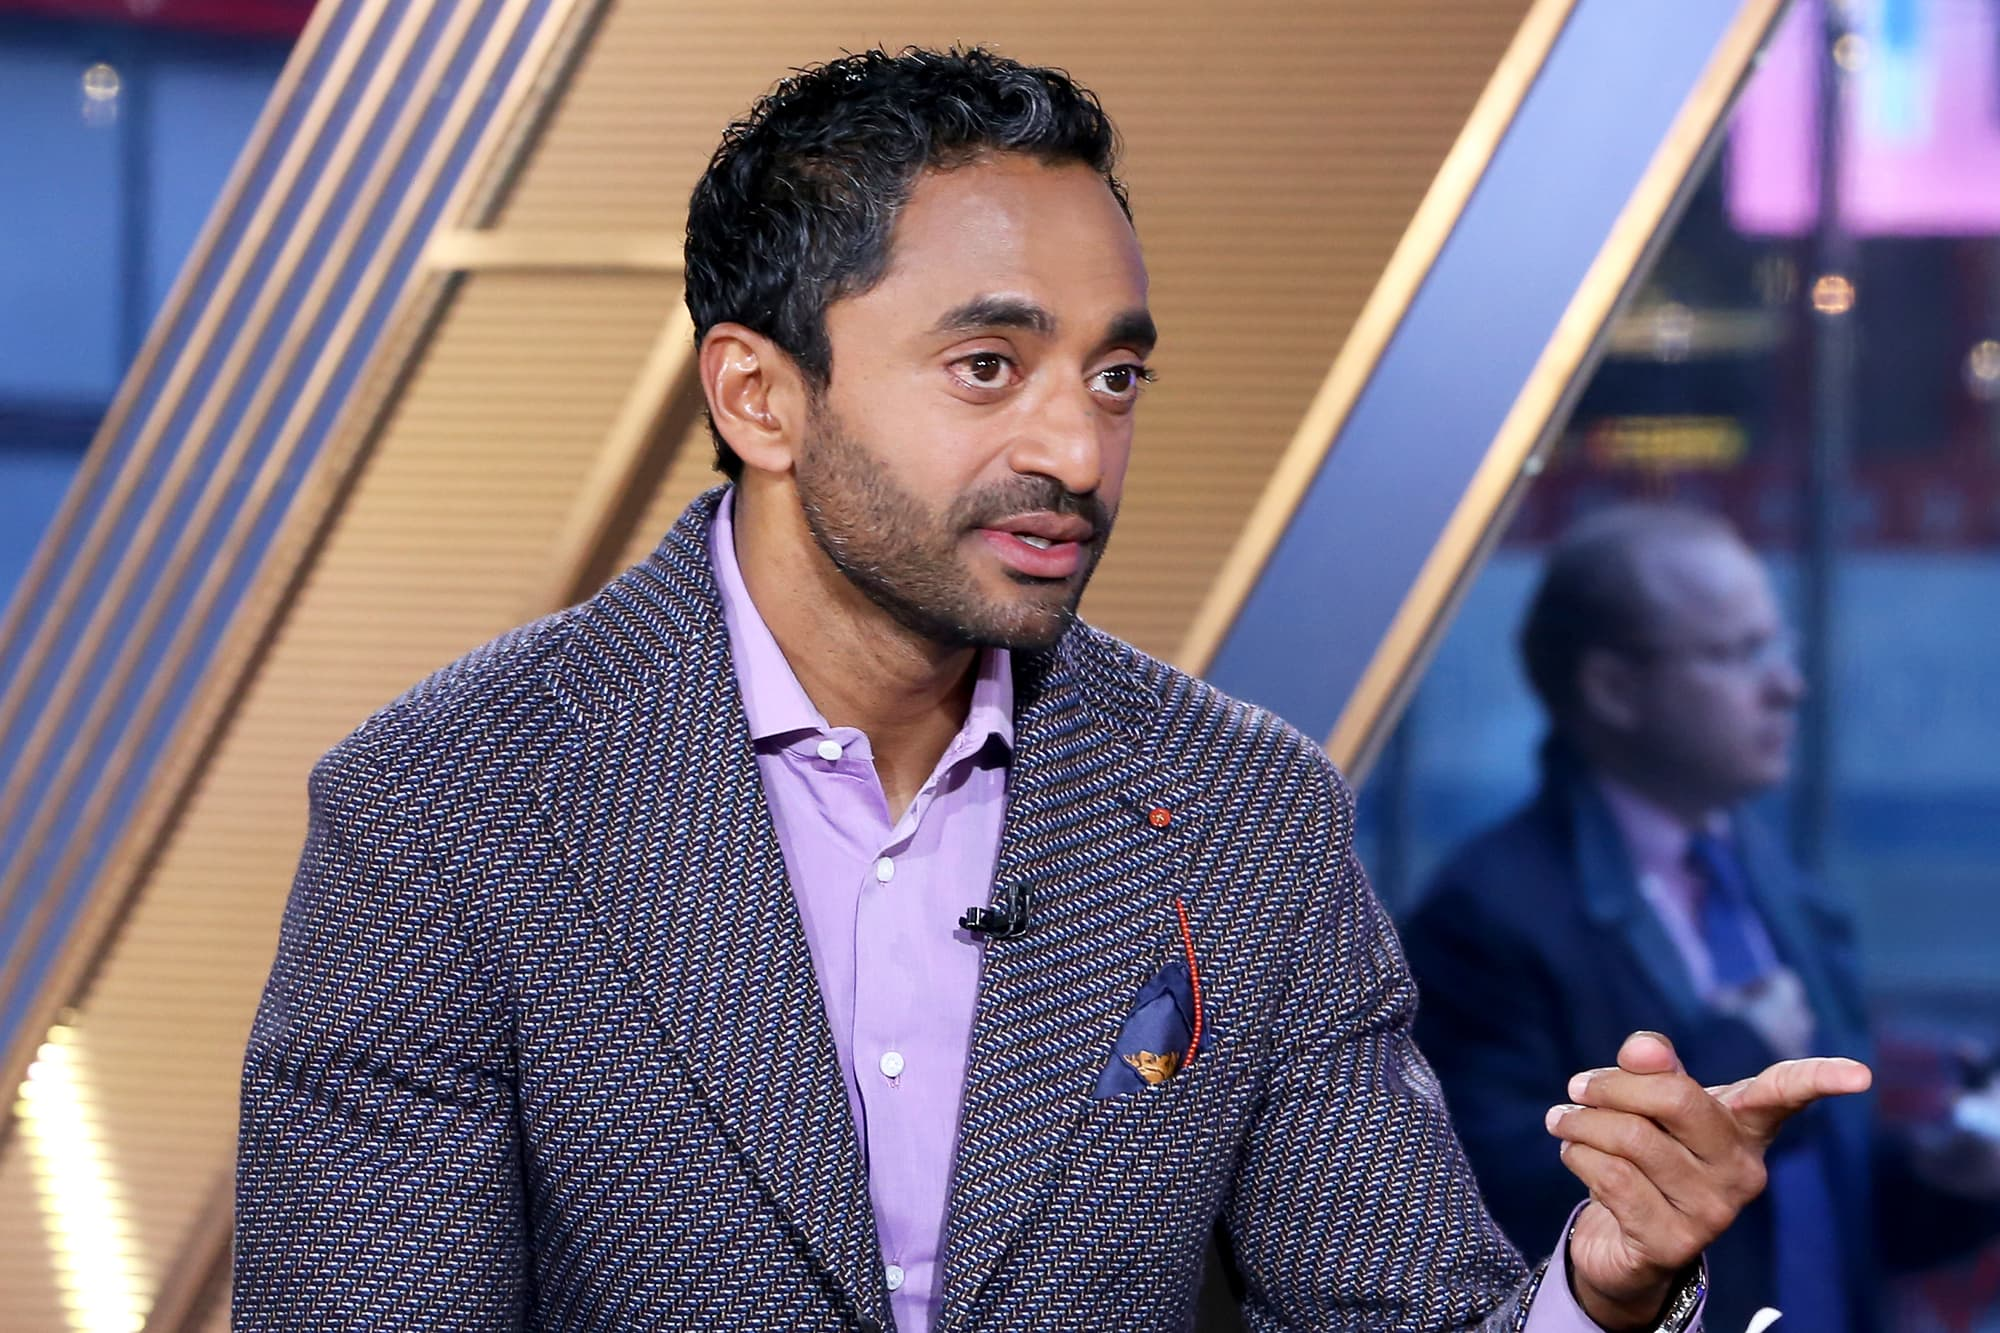 Silicon Valley investor Chamath Palihapitiya says he loves Elizabeth Warren's wealth tax